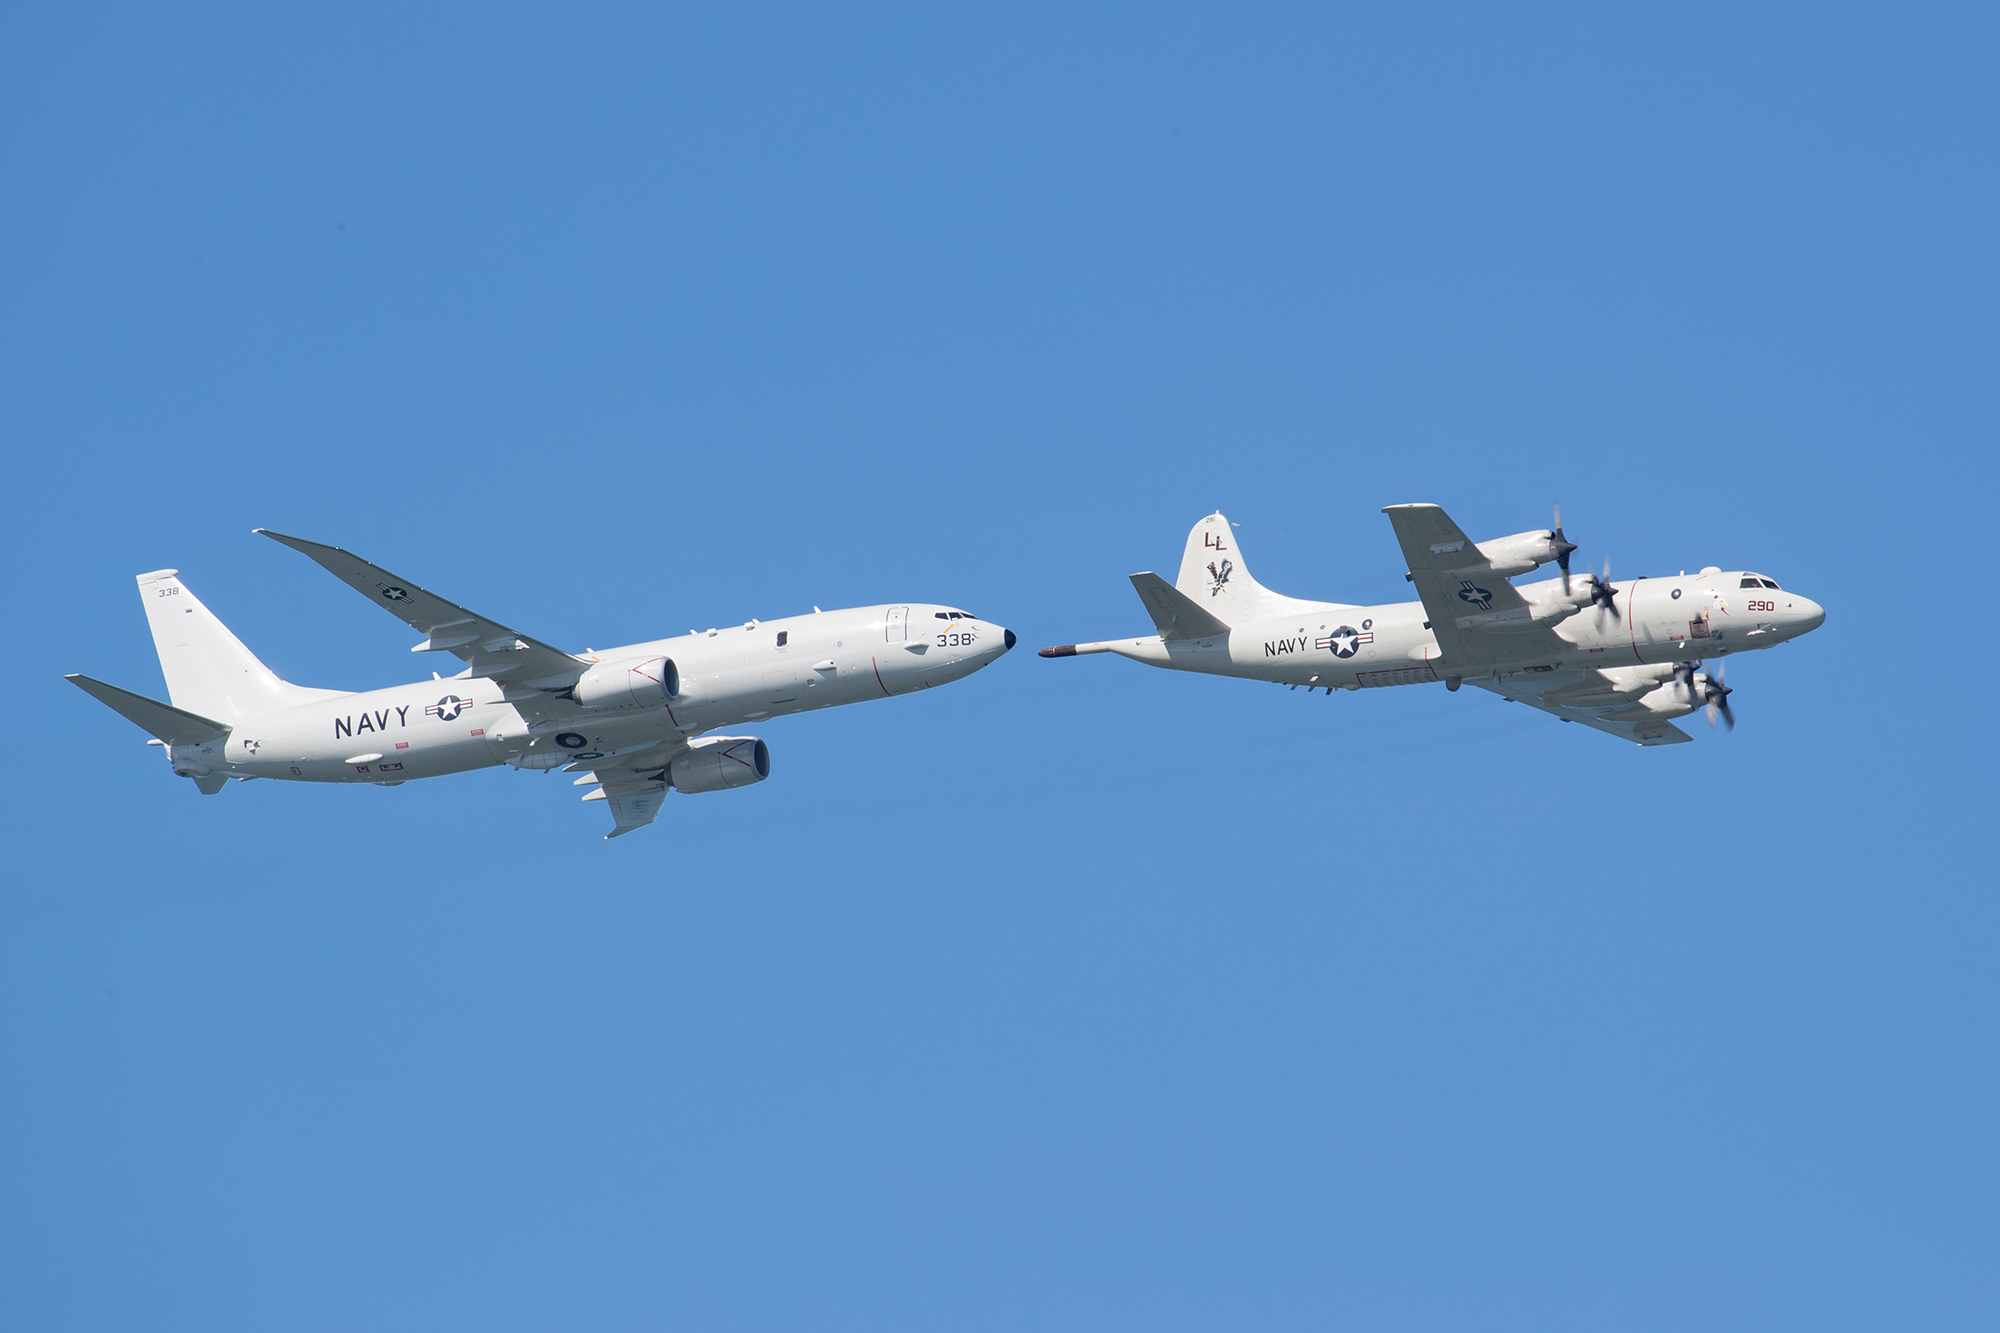 P-8 and P-3 Demonstration